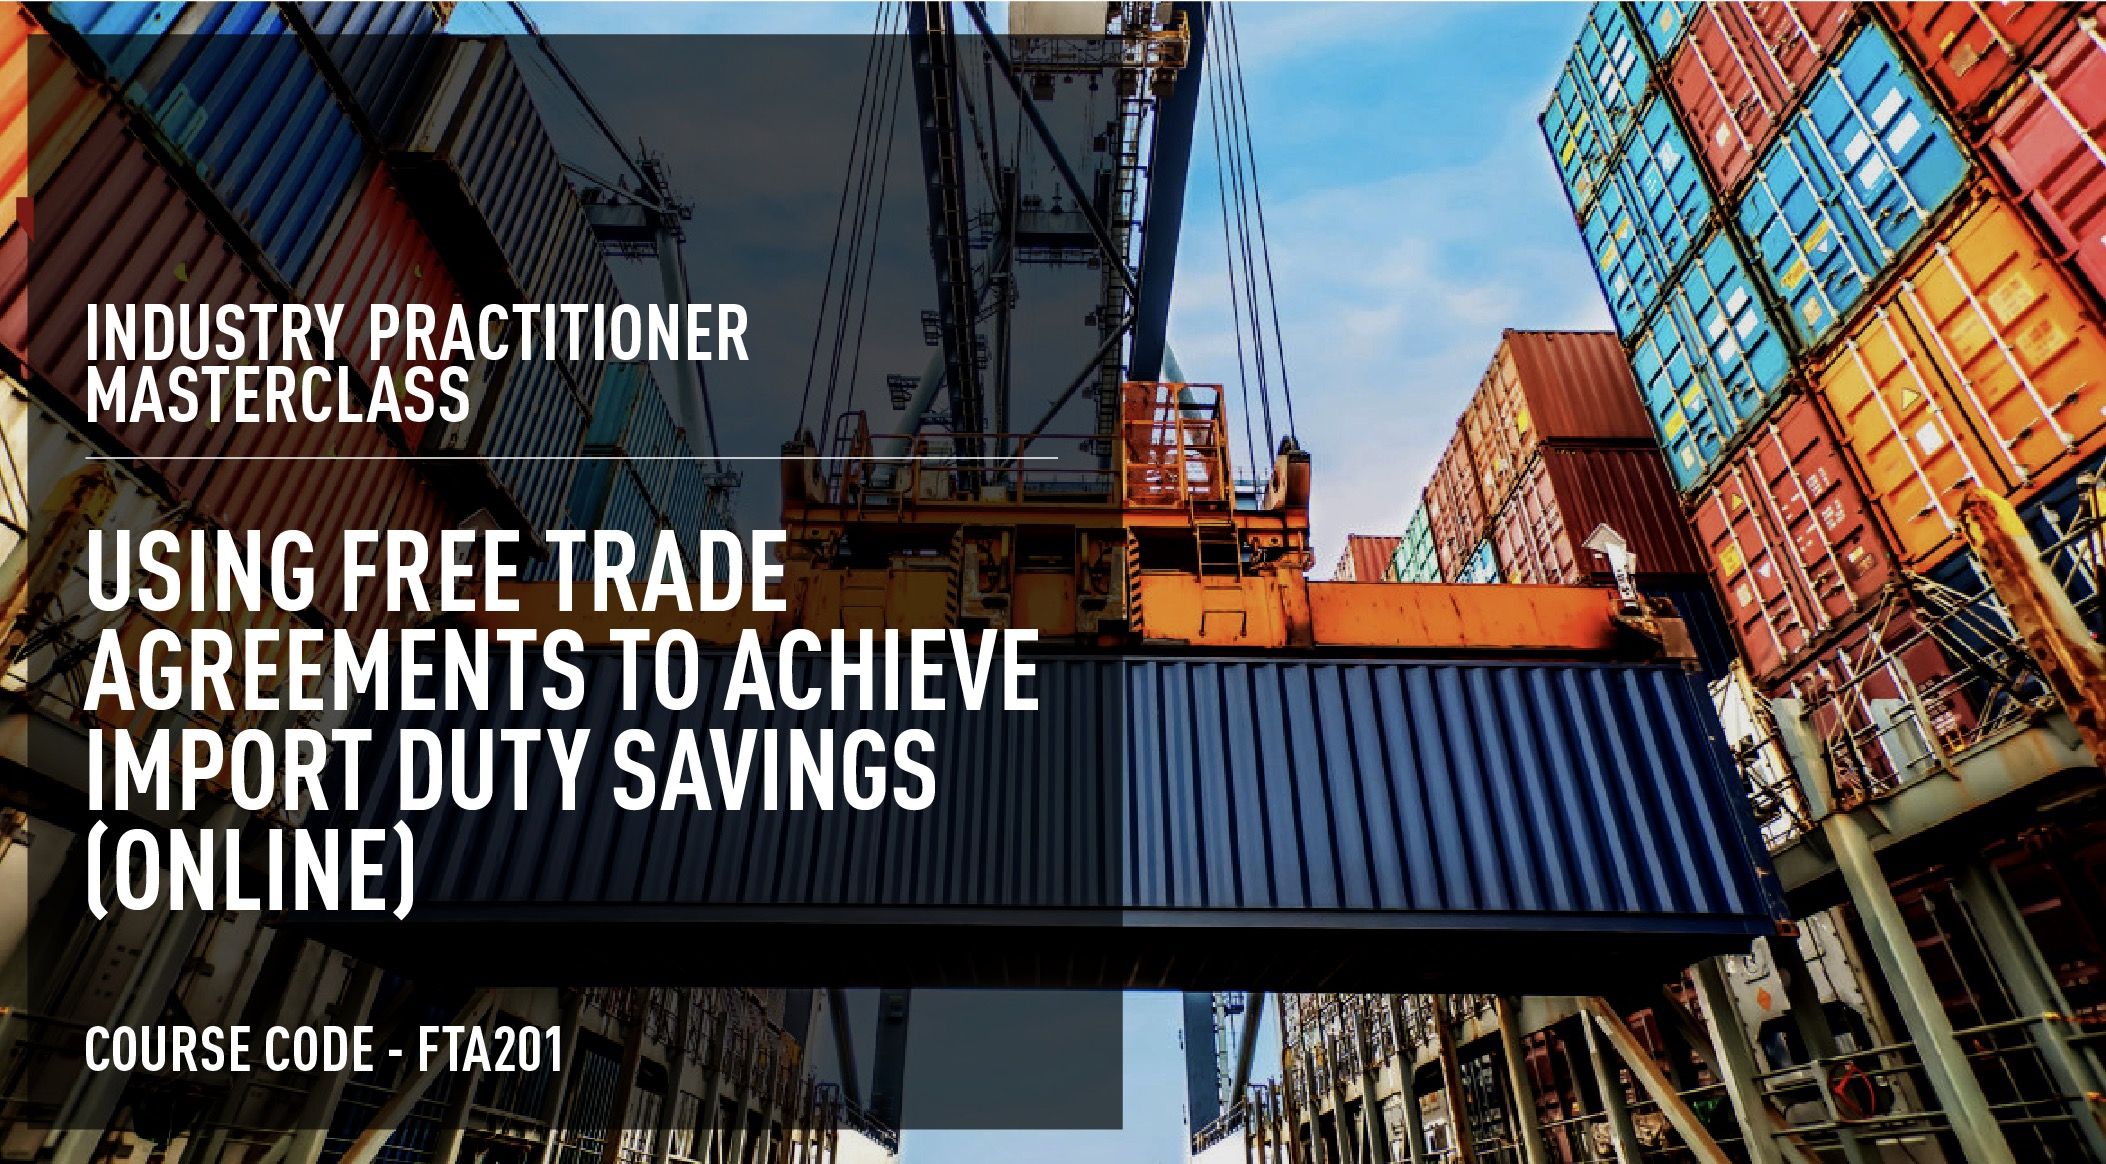 Industry Practitioner Masterclass: Using Free Trade Agreements To Achieve Duty Savings – Online (60 days access) Course Code: FTA201